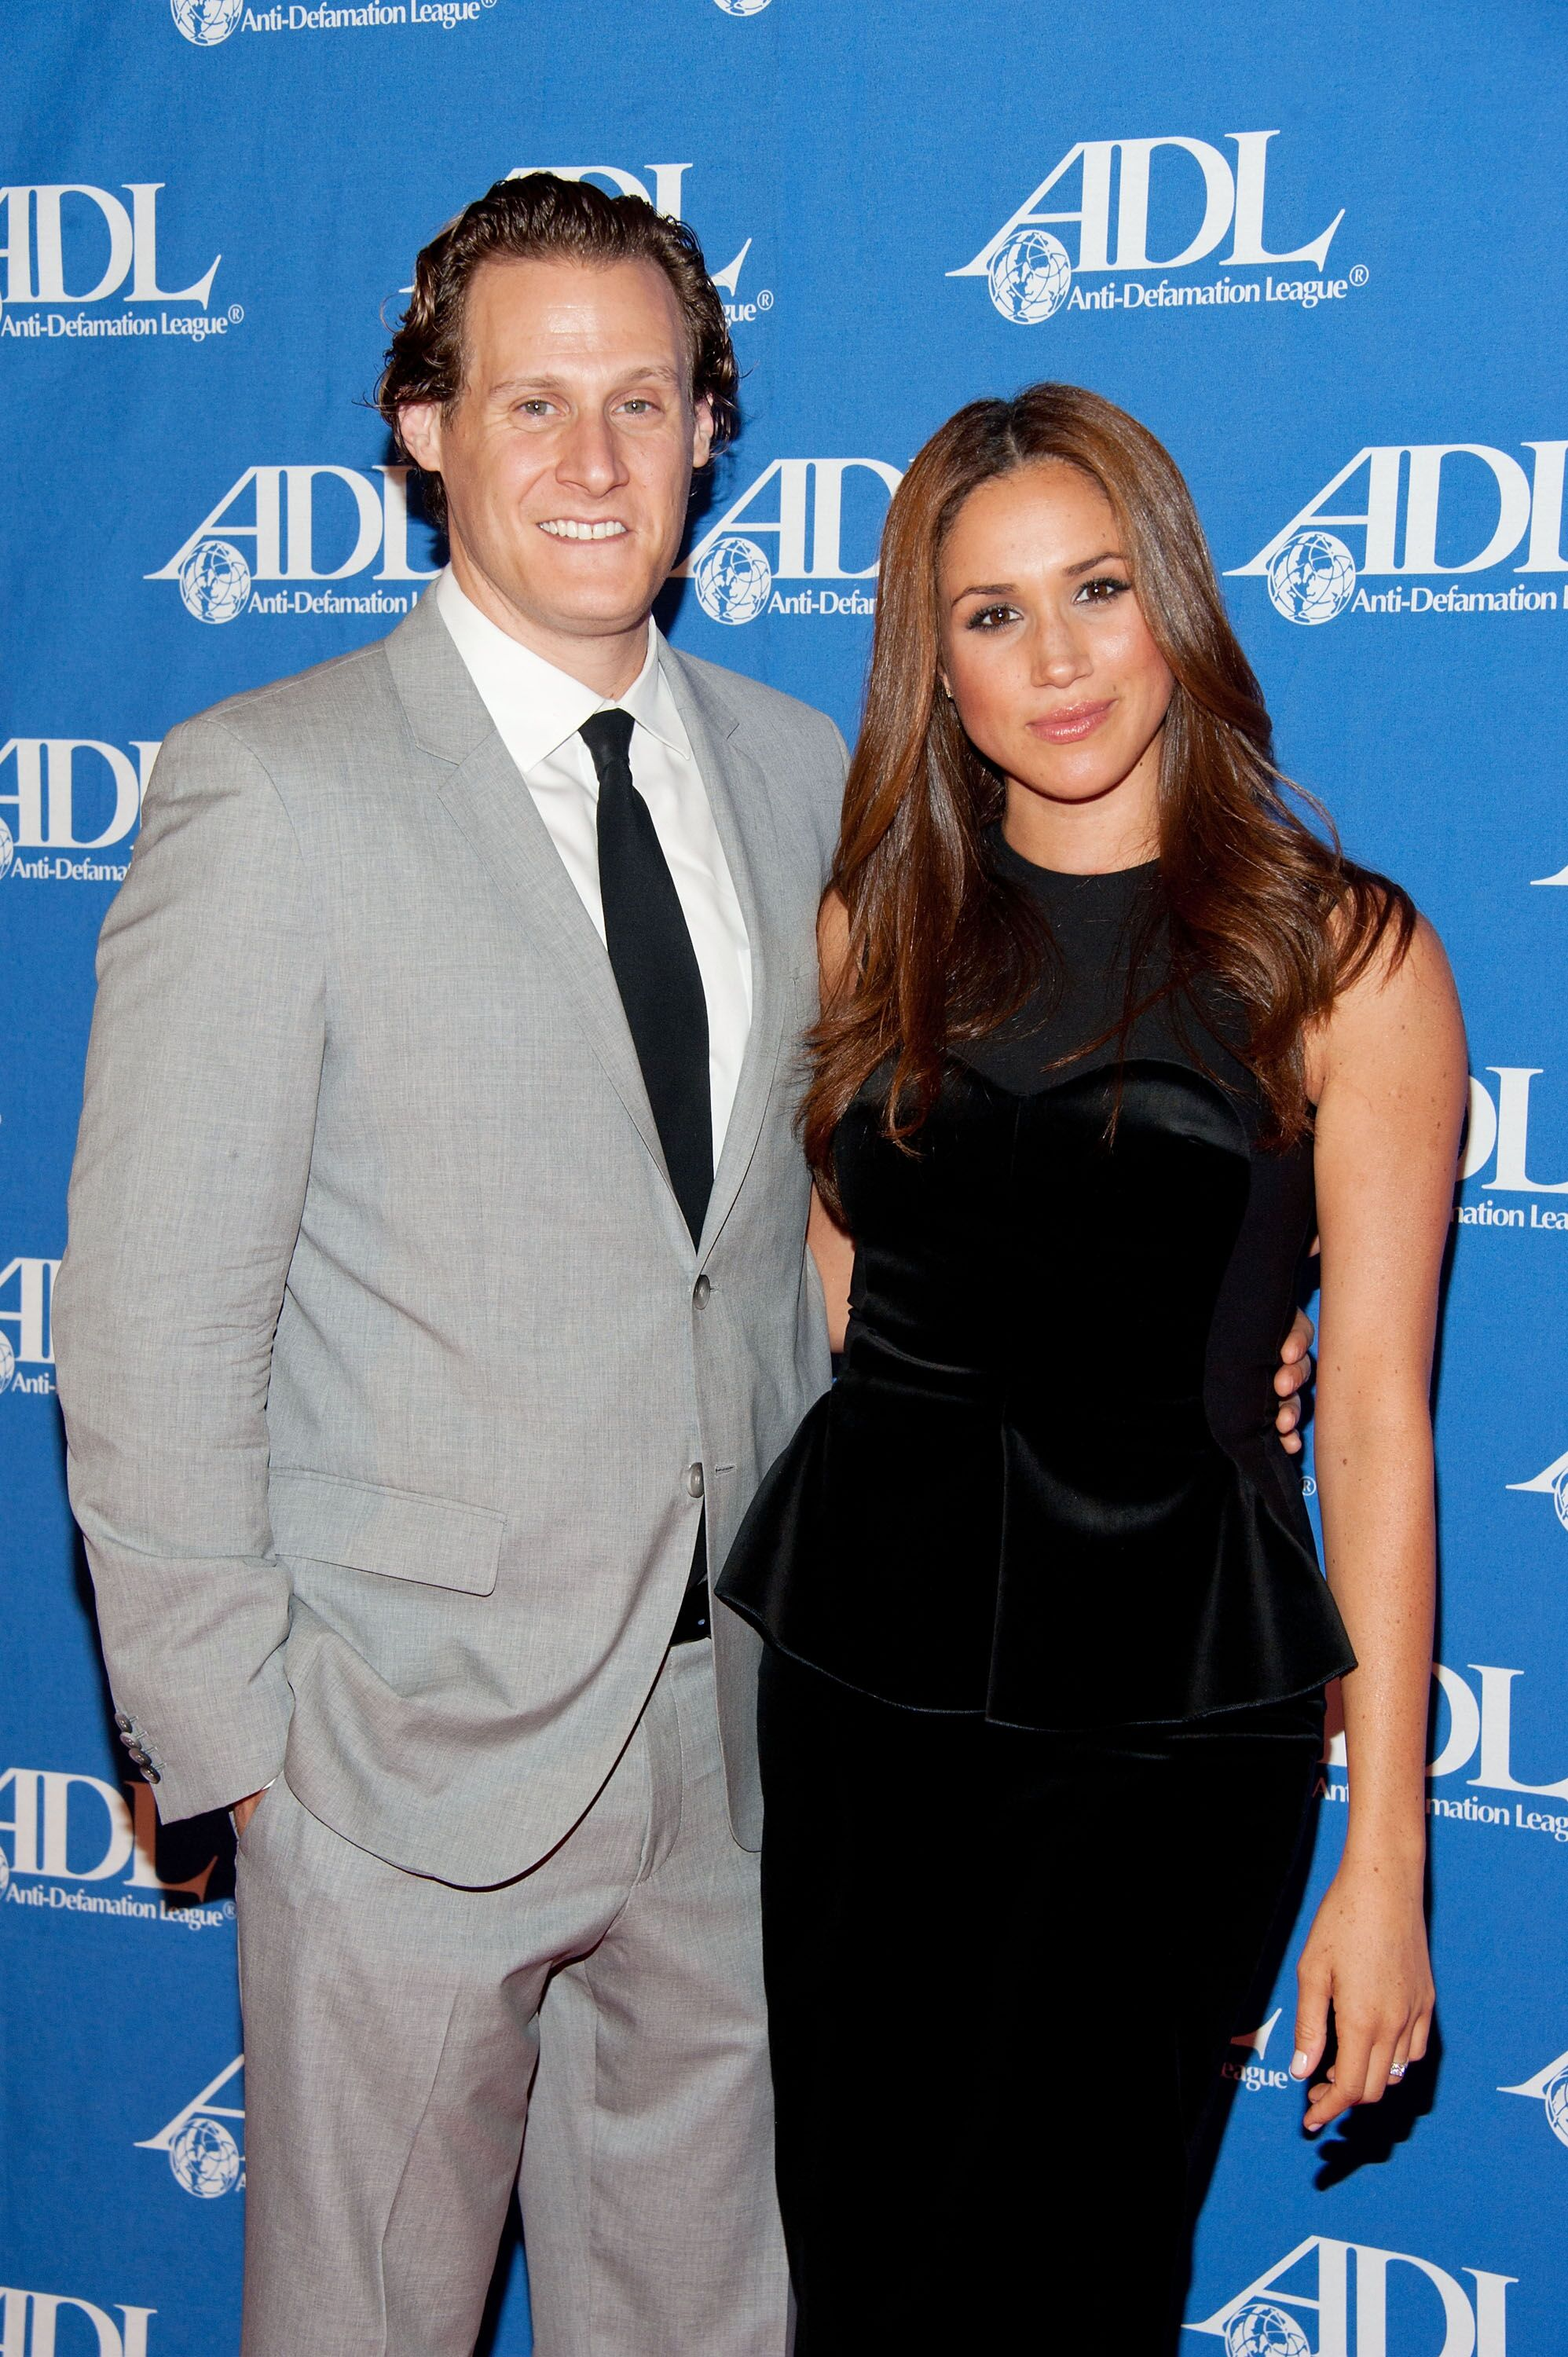 Trevor Engelson and Meghan Markle at a Anti-Defamation League Event | Source: Getty Images